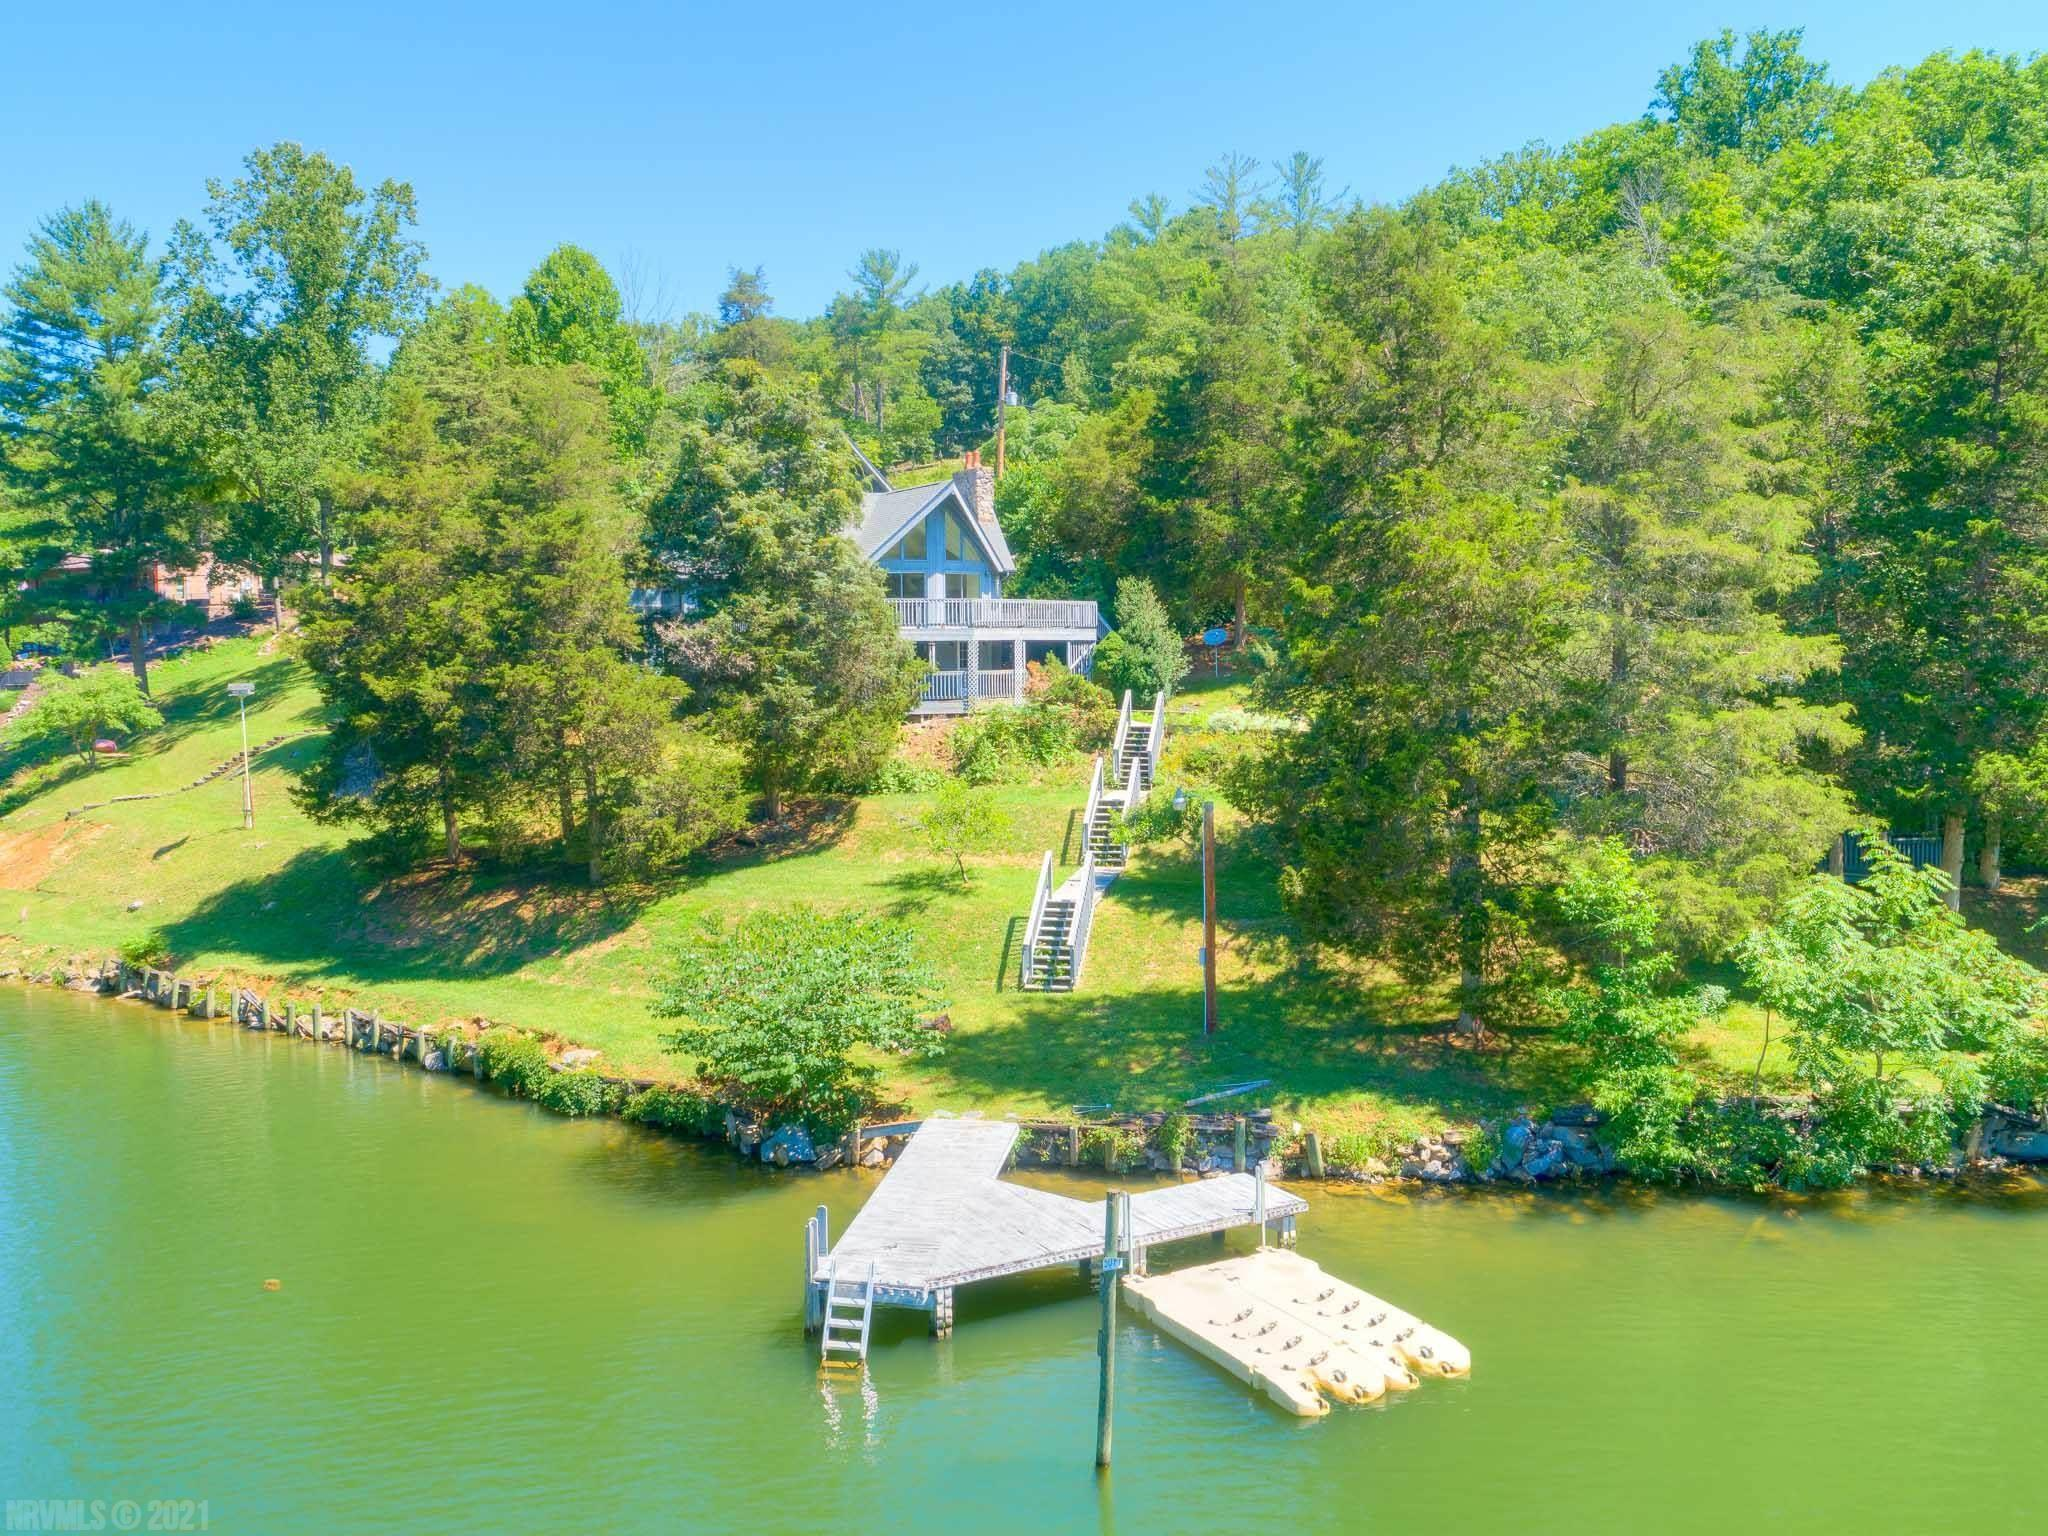 A rare find on the shoreline of Claytor Lake! Situated on over 2 acres of land with nearly 330 feet of gorgeous waterfront, this home has so much to offer. Put your finishing touches and personal preferences into this home and you'll have the perfect lake getaway or full-time home. Positioned for ultimate seclusion and privacy, this lake home has an open floor plan, main level master, large family room, two fireplaces and lots of outdoor entertaining space. The three level garage has so many possibilities! The garage upstairs has a bedroom with a half bath and the lower level has a redwood/cedar sauna, full bath and a large game room area with its own decking. The main house has three bedrooms and three baths. The roof is newer and the carpeting downstairs is new. The double jet ski pad is only two years old. Location, location, location just off the Claytor Lake exit and five minutes to I-81! Is 4799 Mecca West Drive your new home?